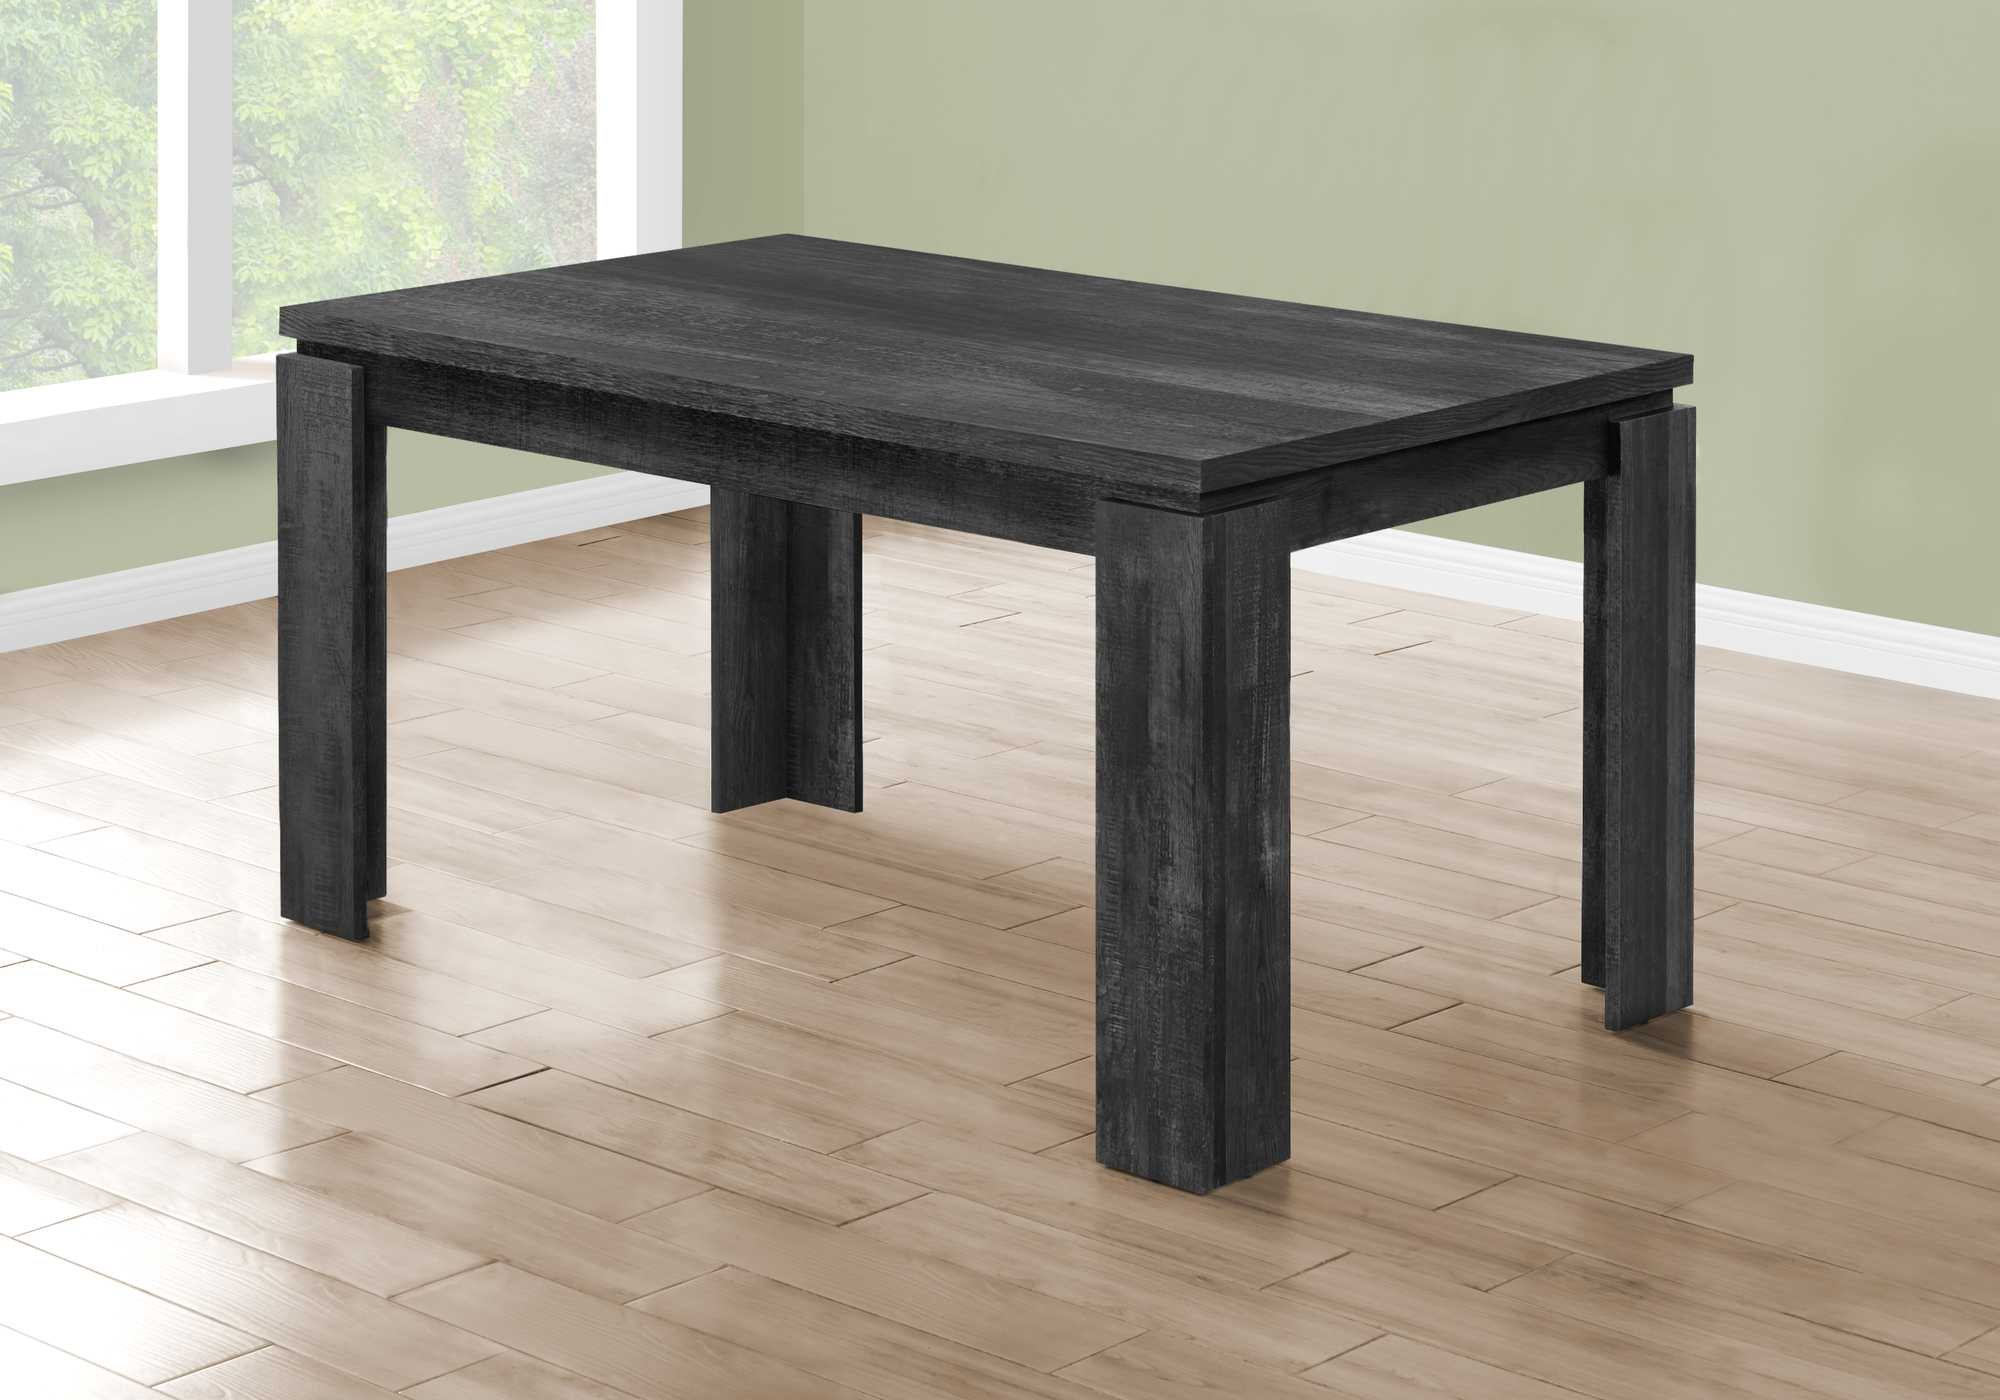 "35.5"" x 59"" x 30.5"" Black Reclaimed Wood Look Dining Table"